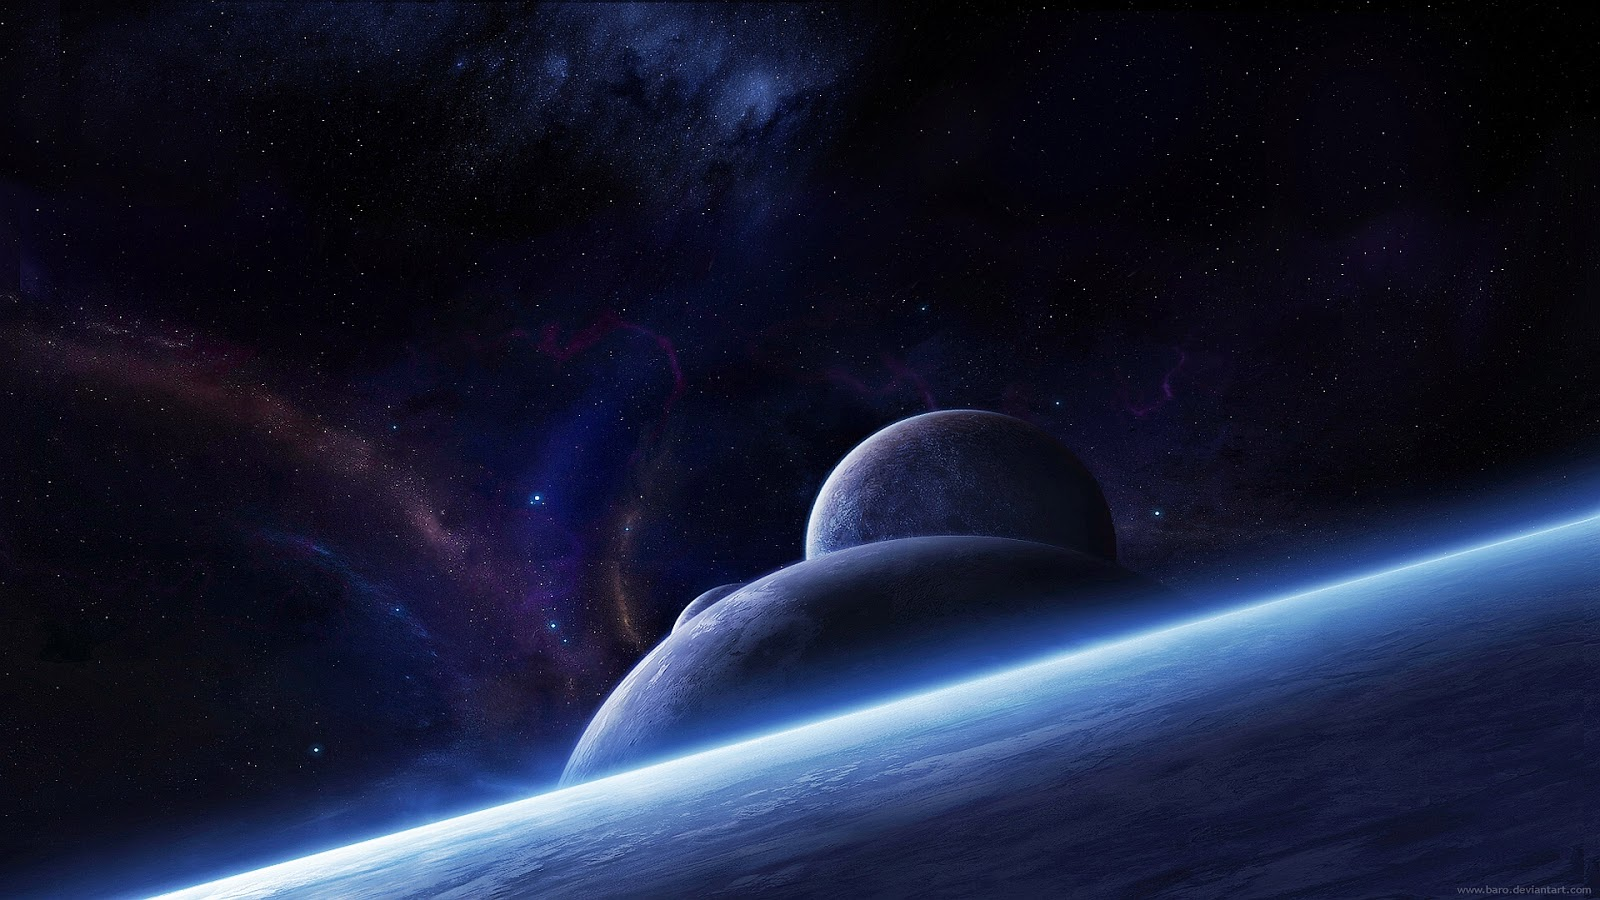 planets-in-space-image-HD-free-download.jpg